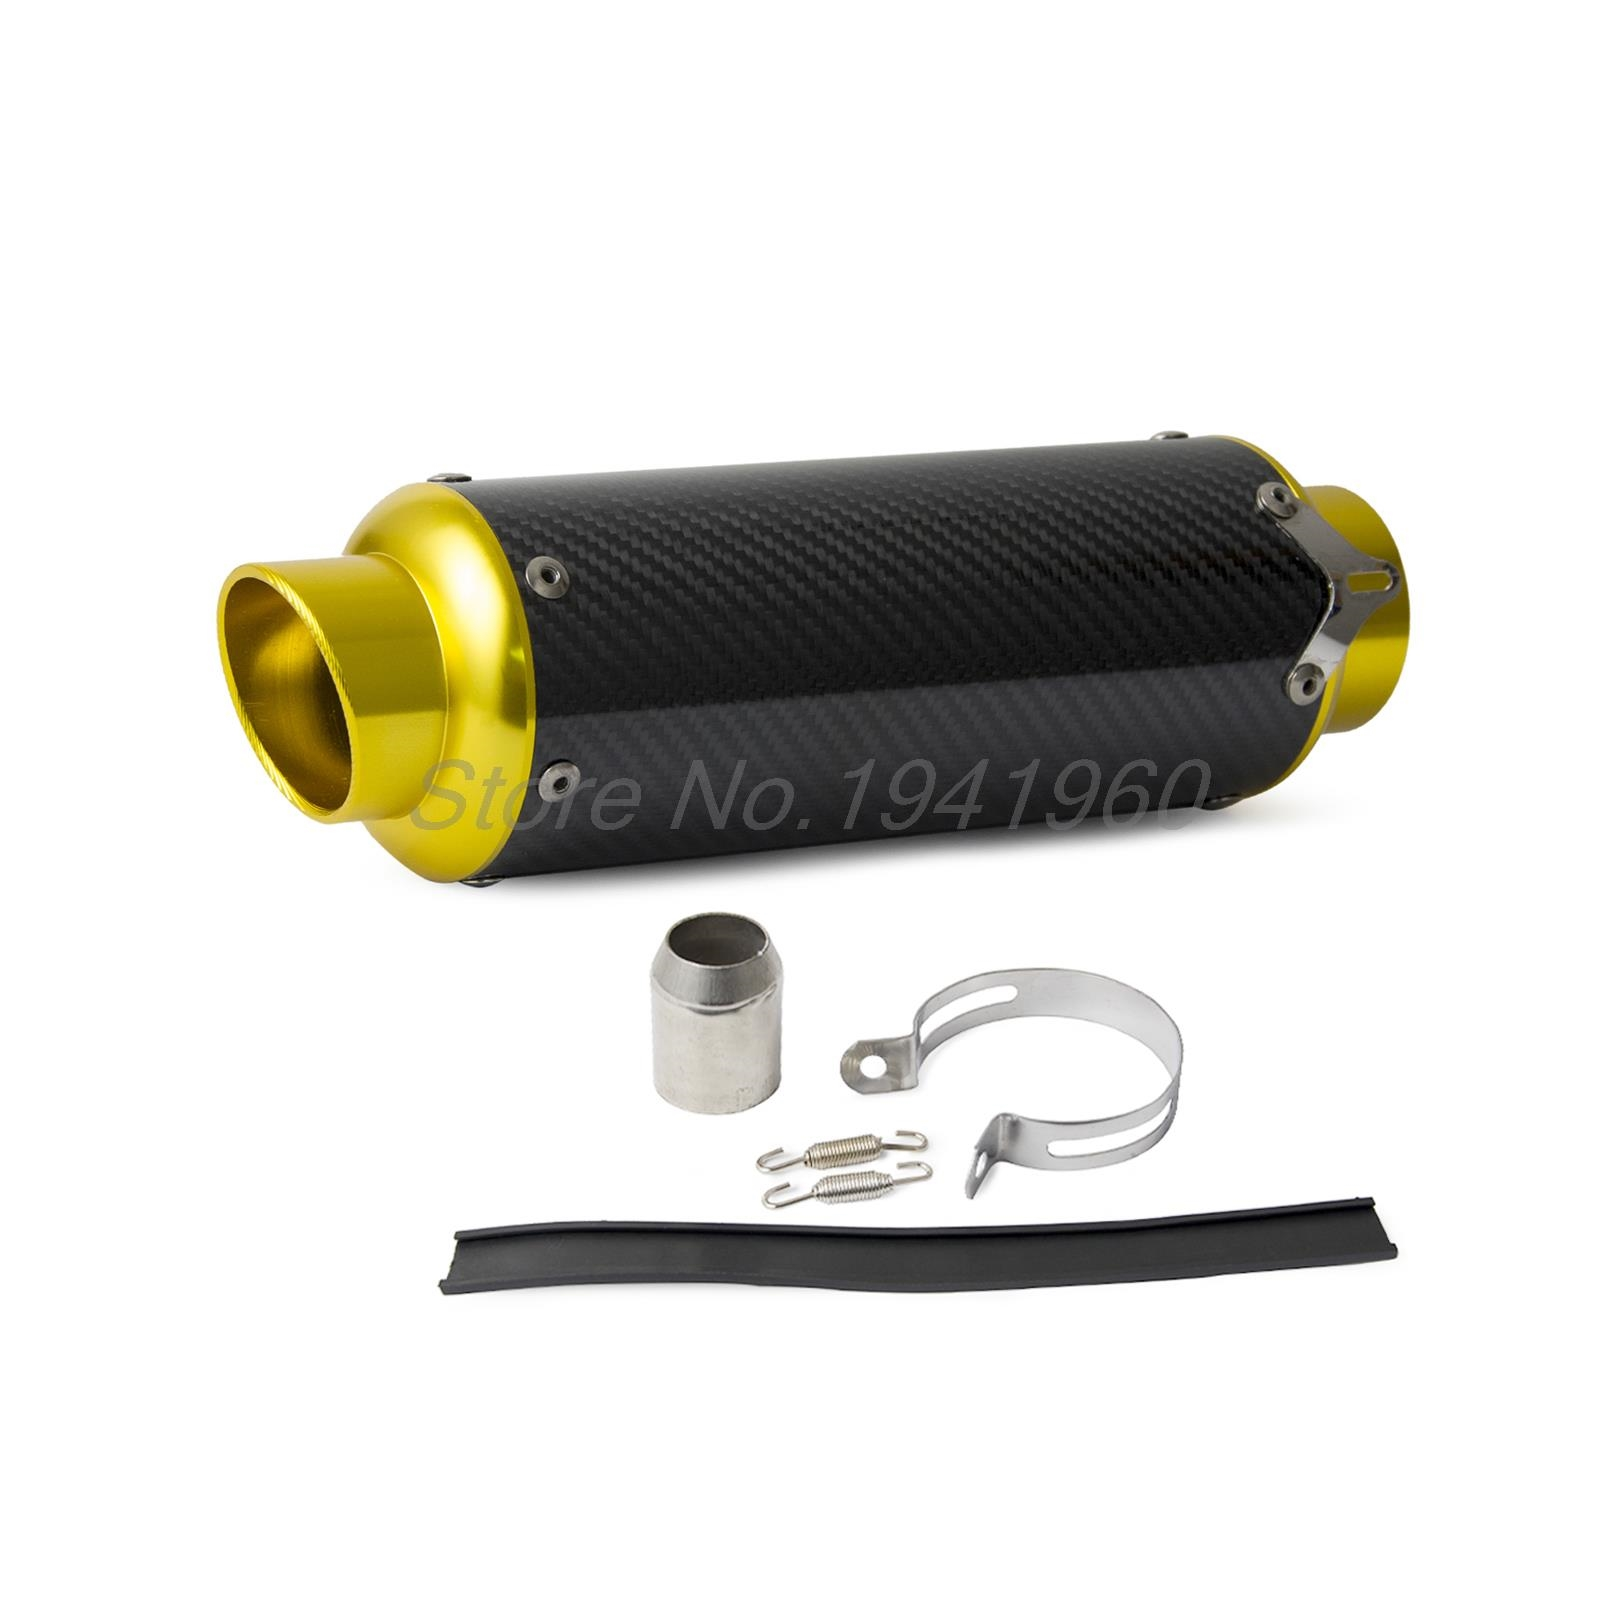 85.00$  Watch now - http://ali19r.worldwells.pw/go.php?t=32673864516 - Carbon Fiber CNC Exhaust Muffler Pipe Gold For Street Sport Racing motorcycles 85.00$